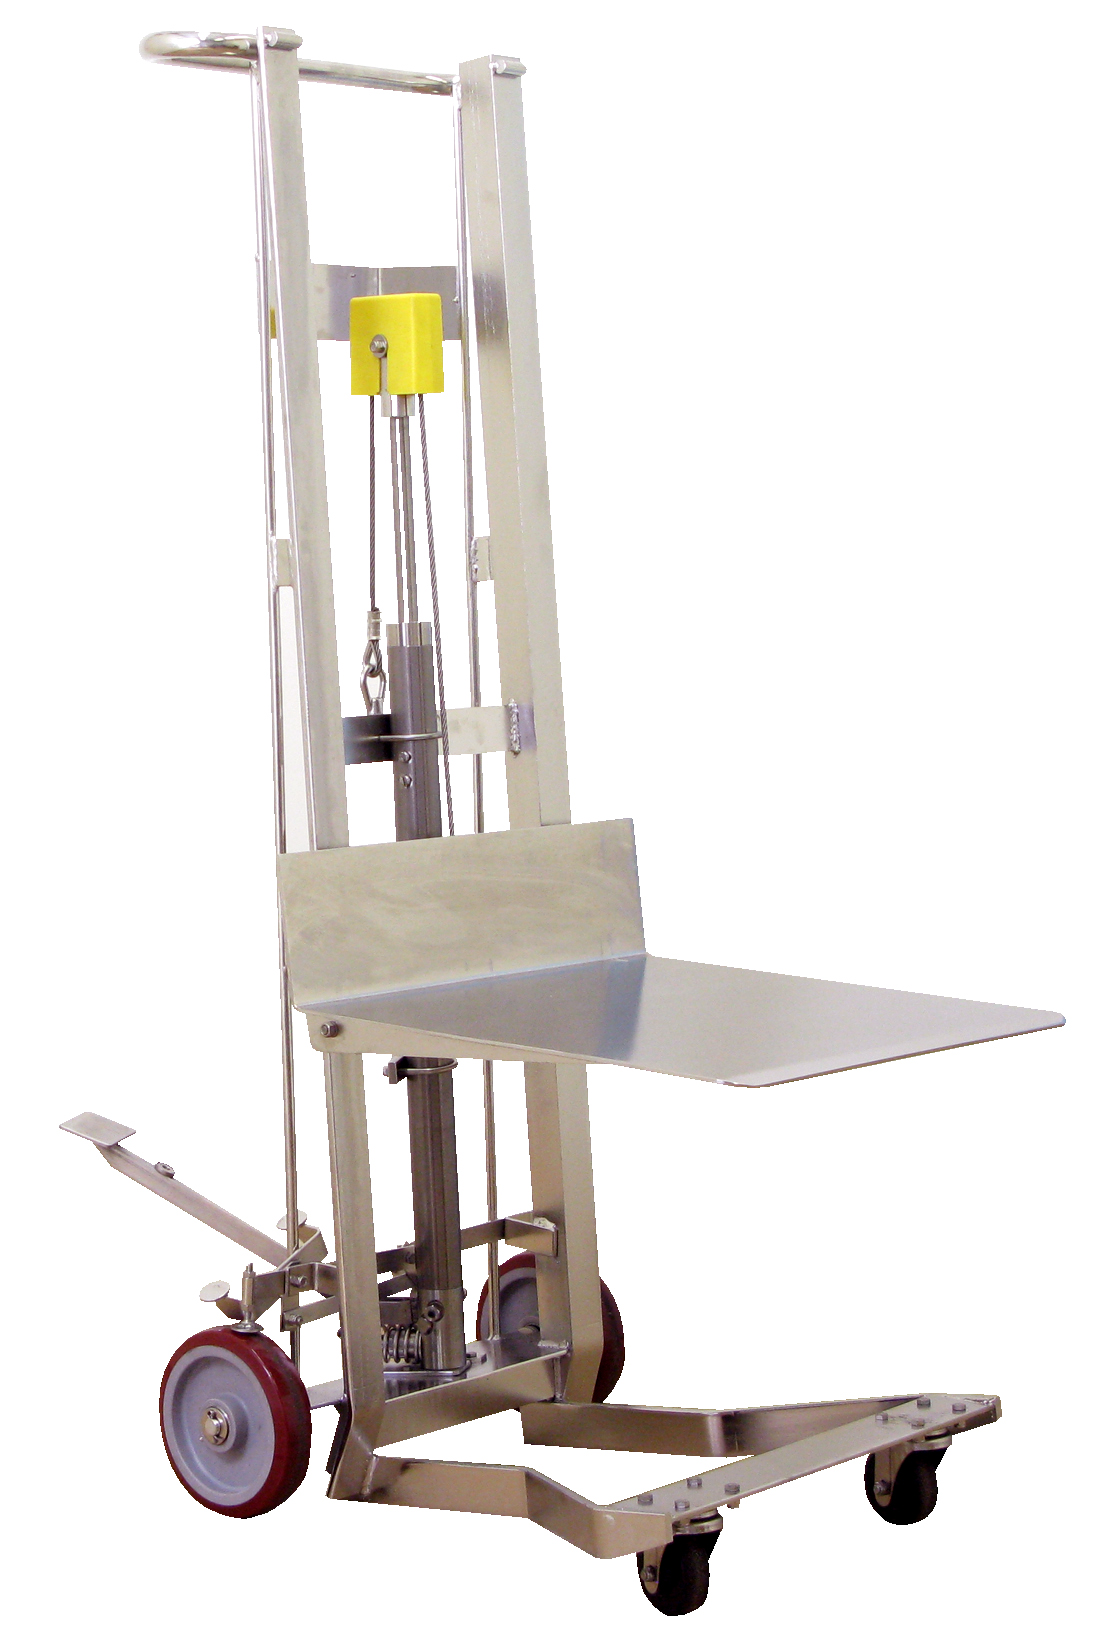 Hydraulic Material Lift : Wesco stainless steel hydraulic pedalift a plus warehouse